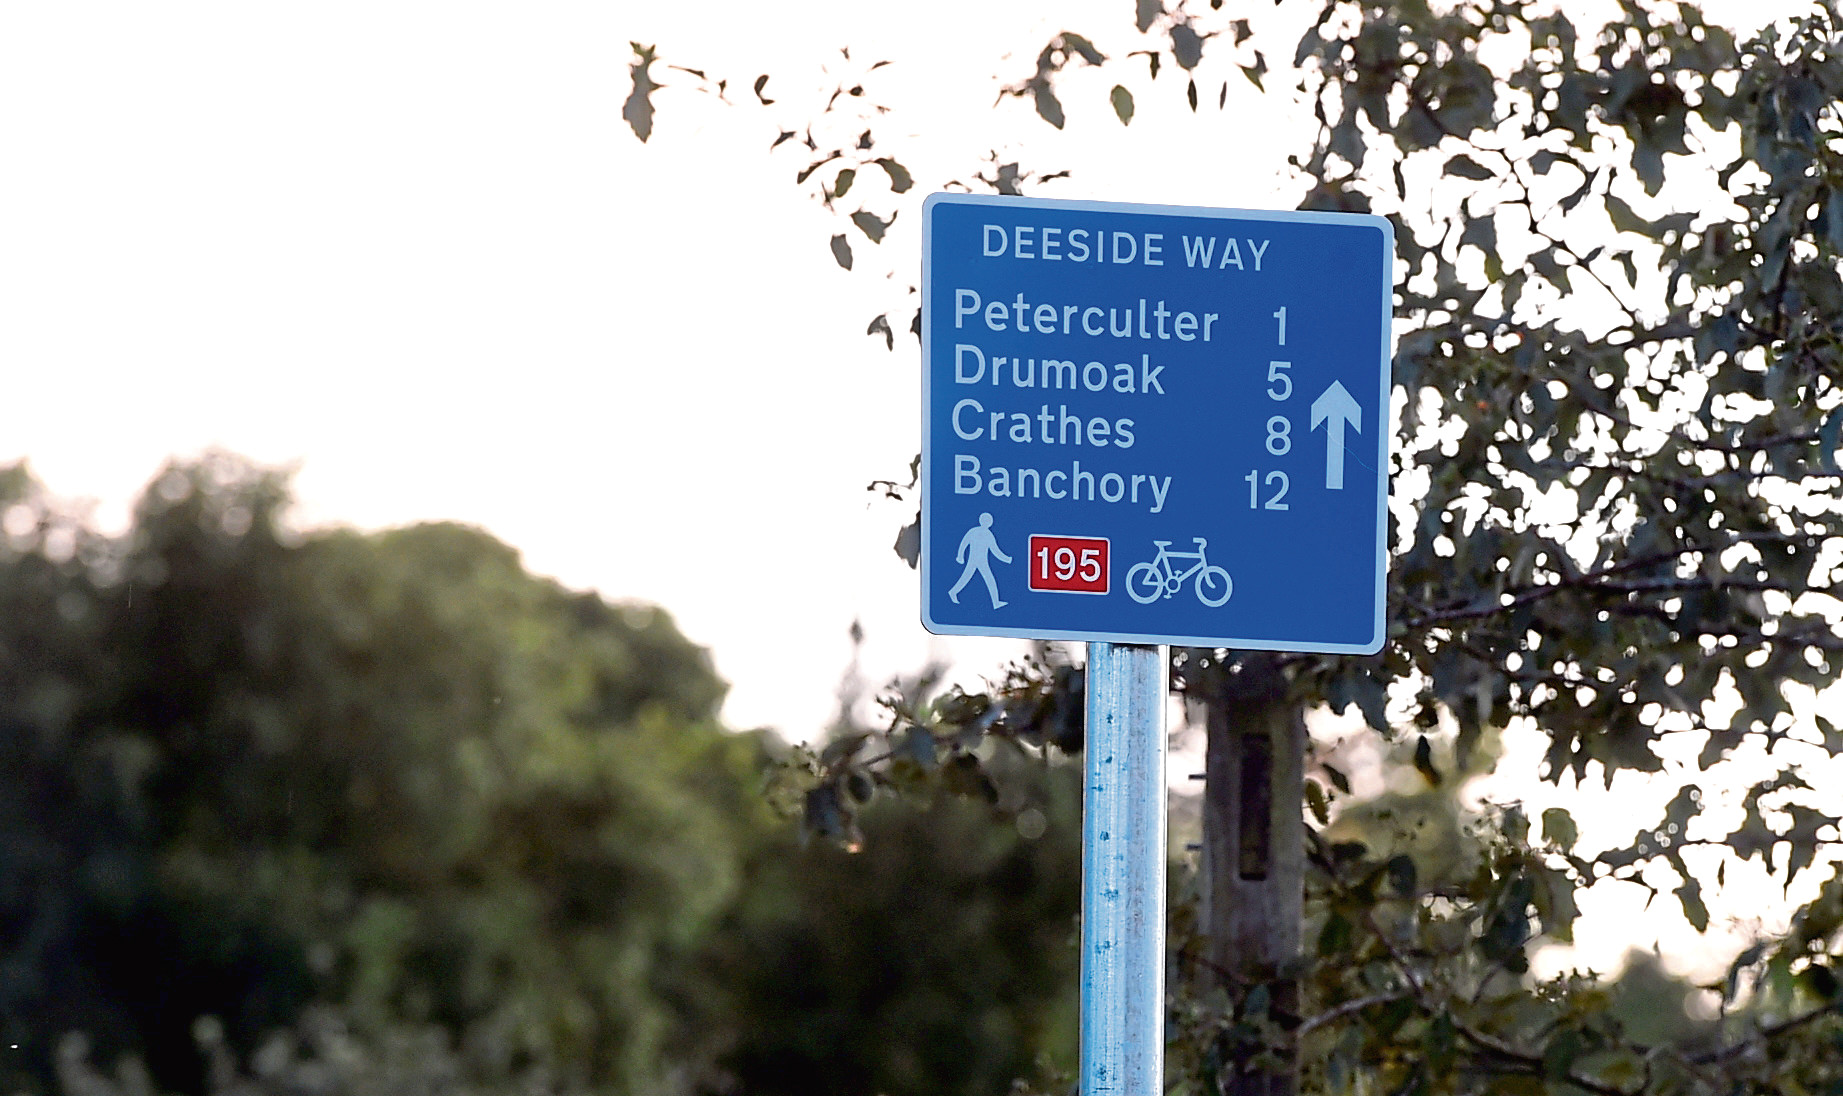 The Deeside Way is a popular walking and cycling route. Picture by Jim Irvine